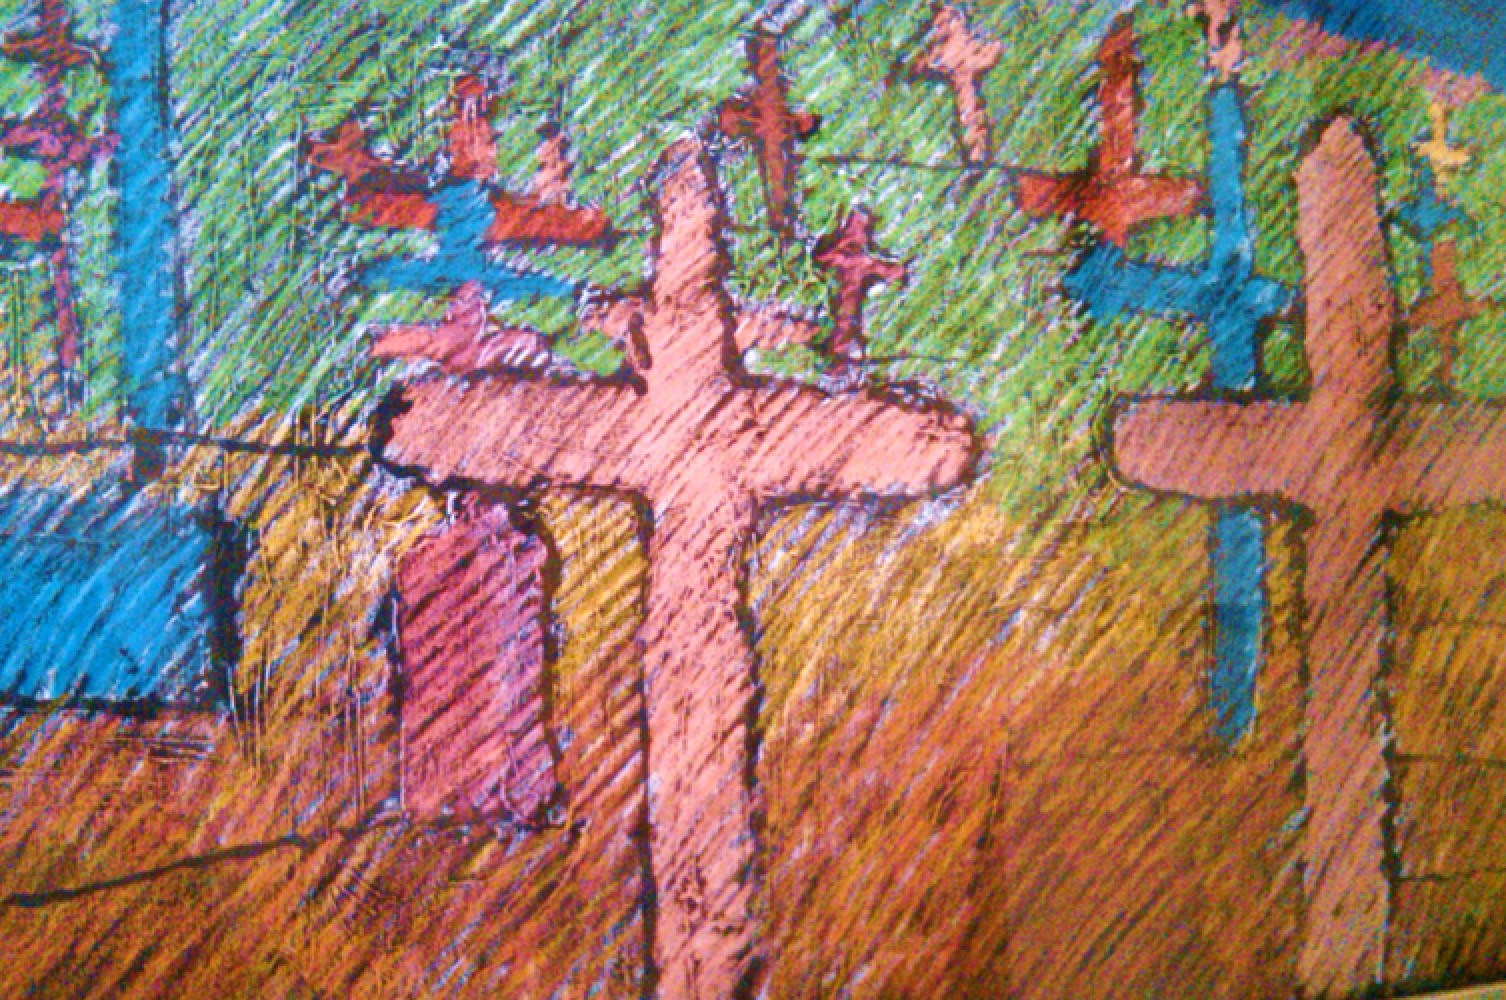 Graveyard and Spirit of Renewal Pastel